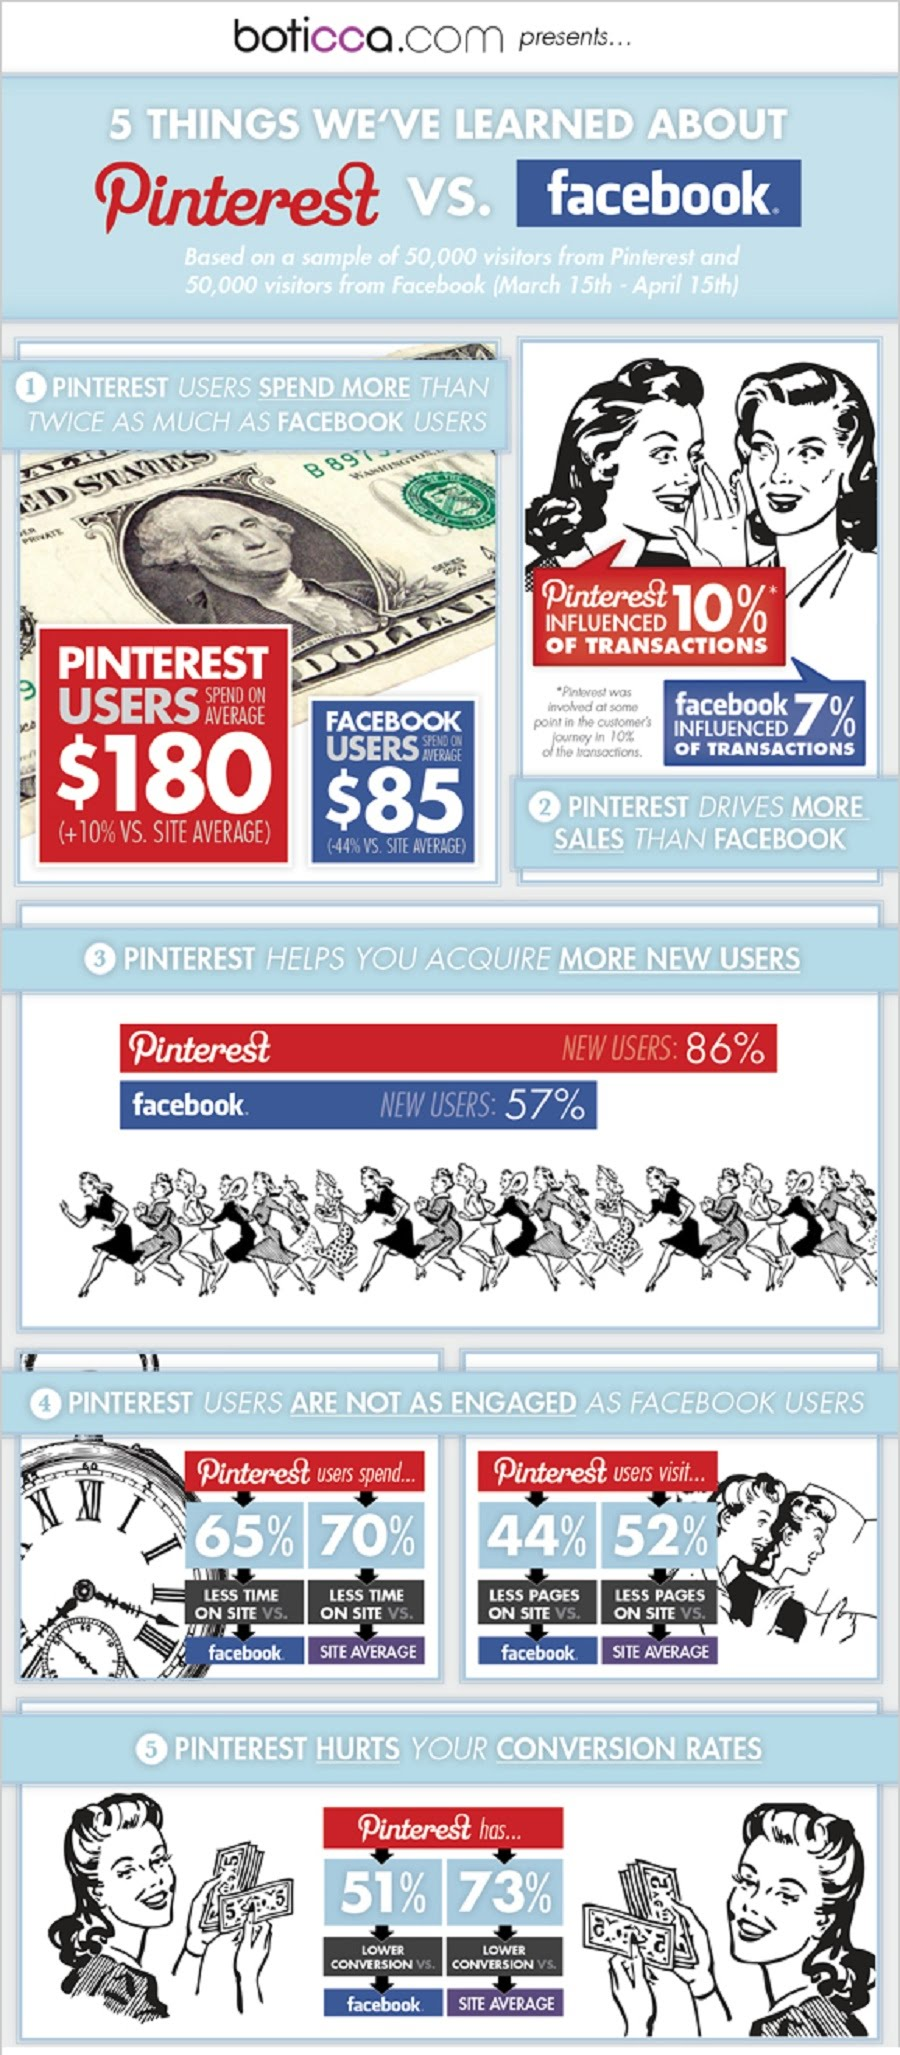 Facebook vs. Pinterest Infographic 5 Points